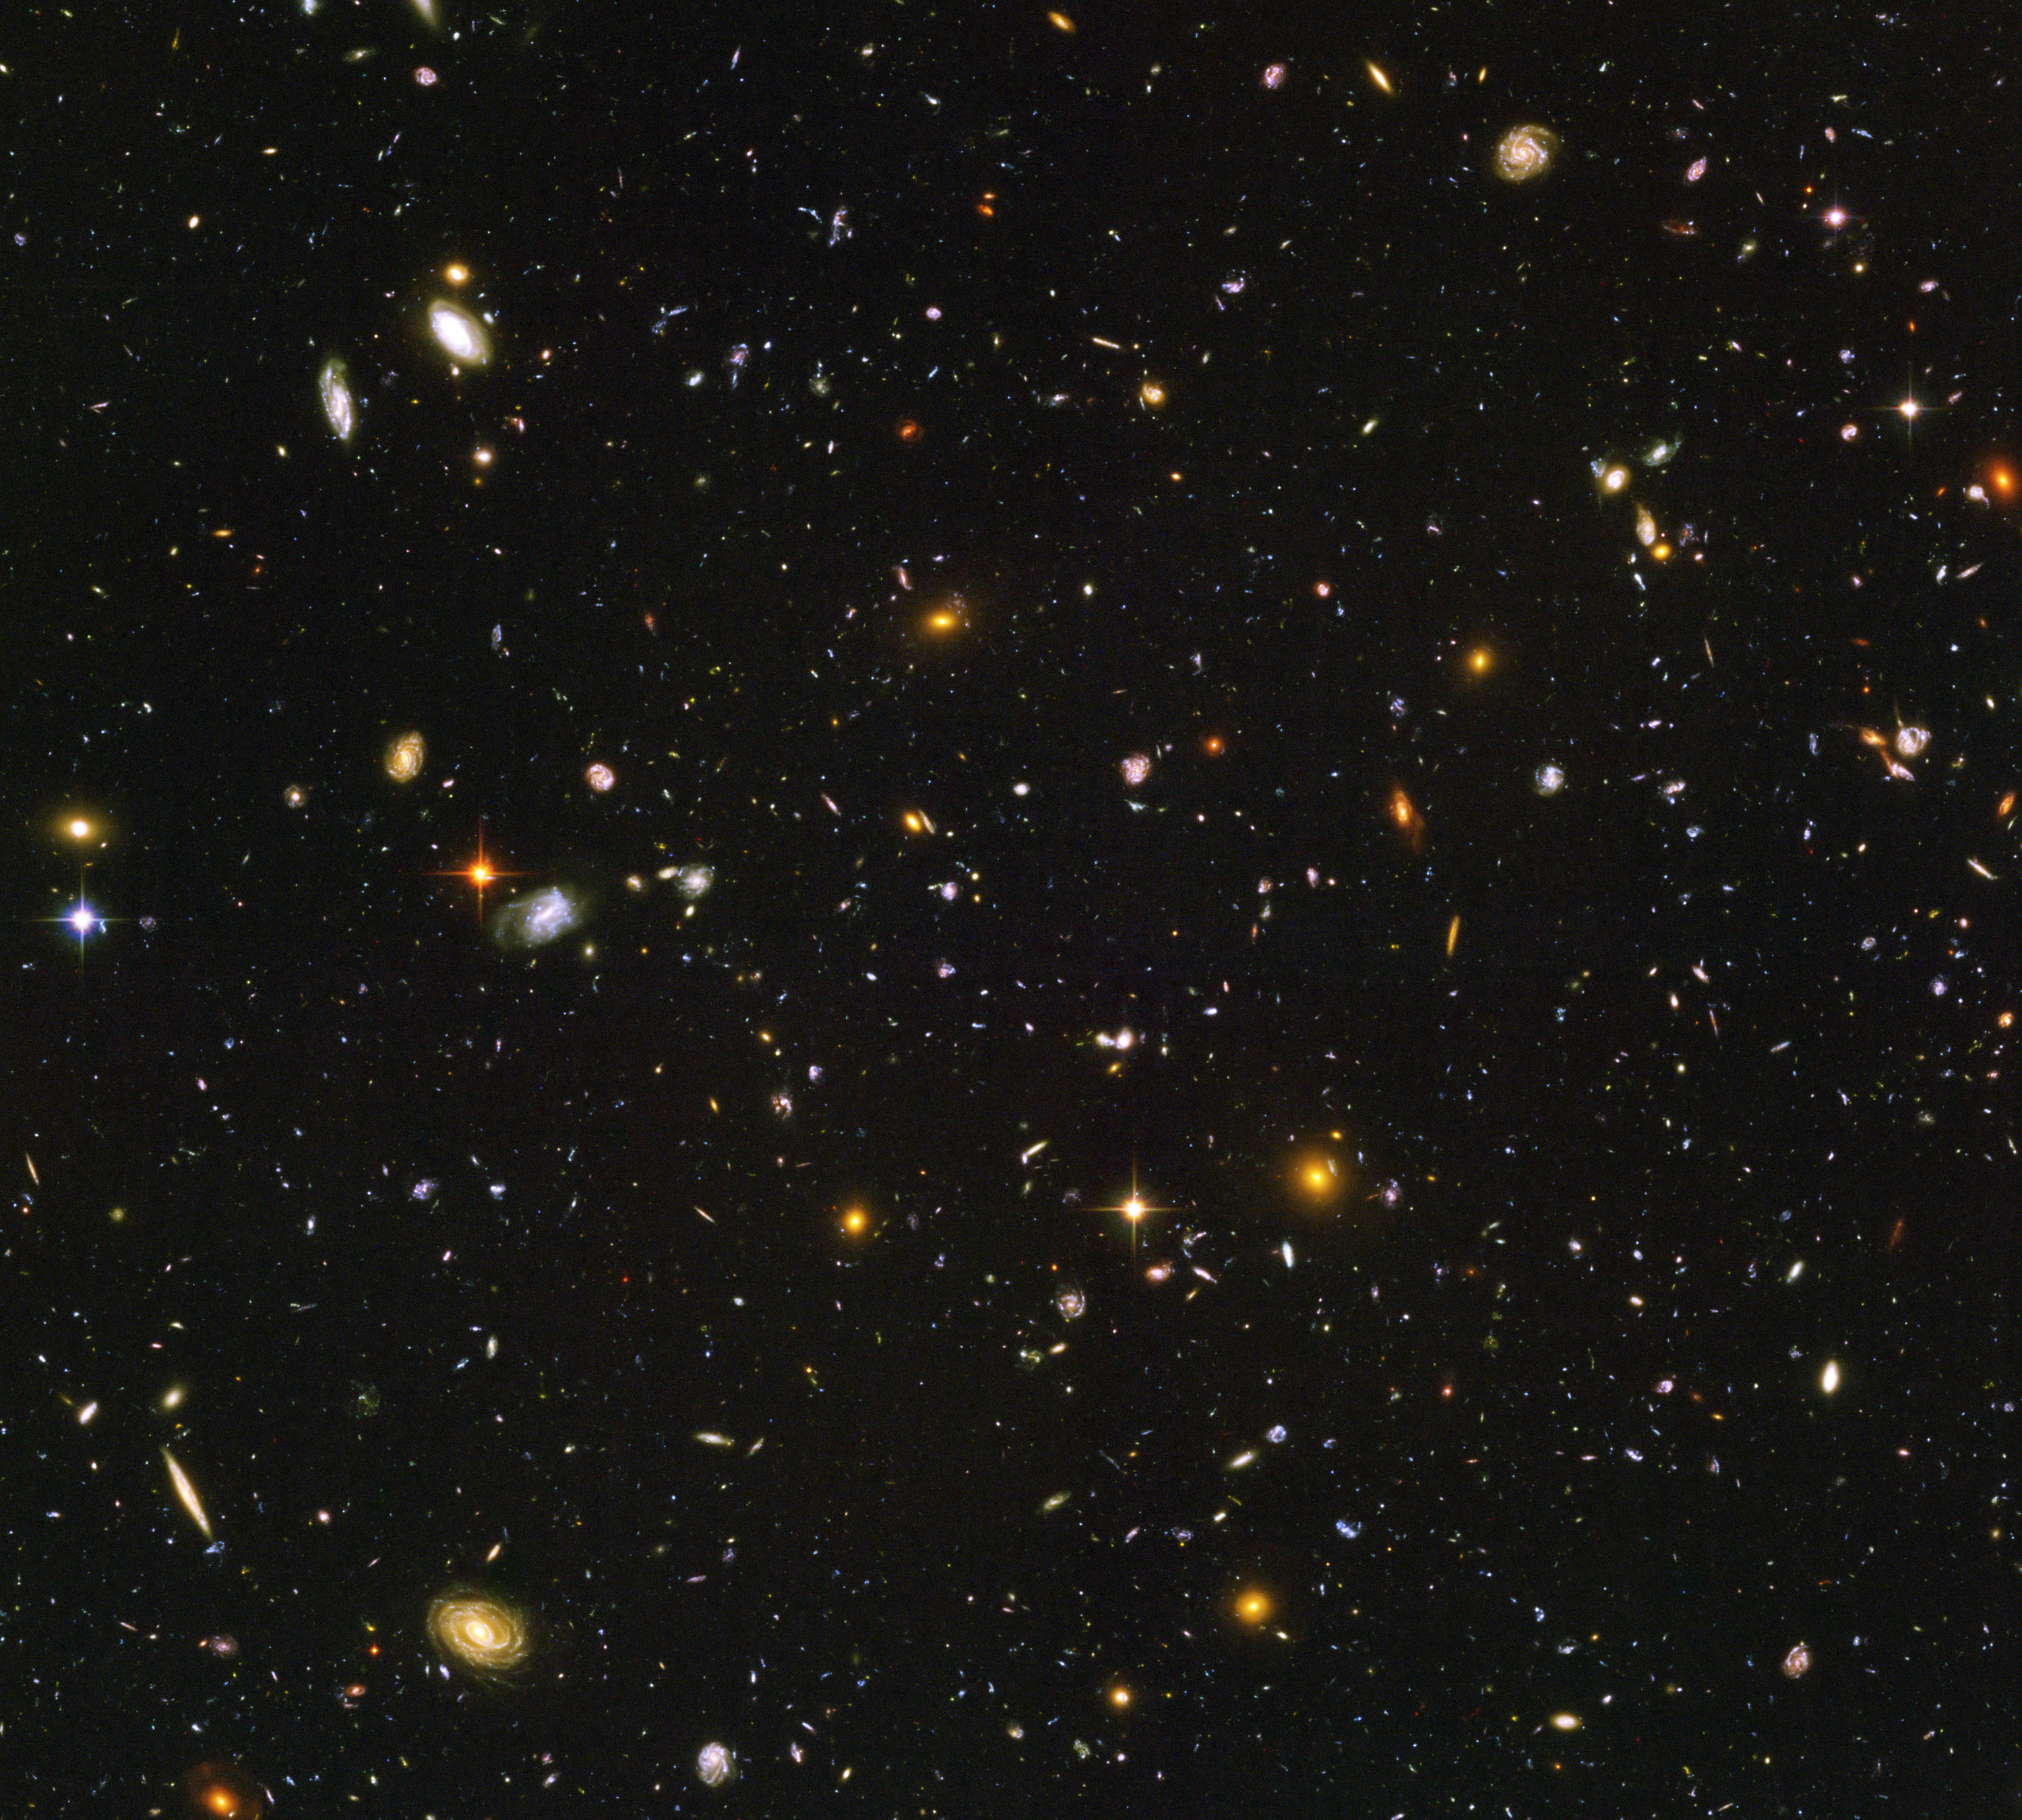 ESA Science & Technology: Hubble Ultra Deep Field